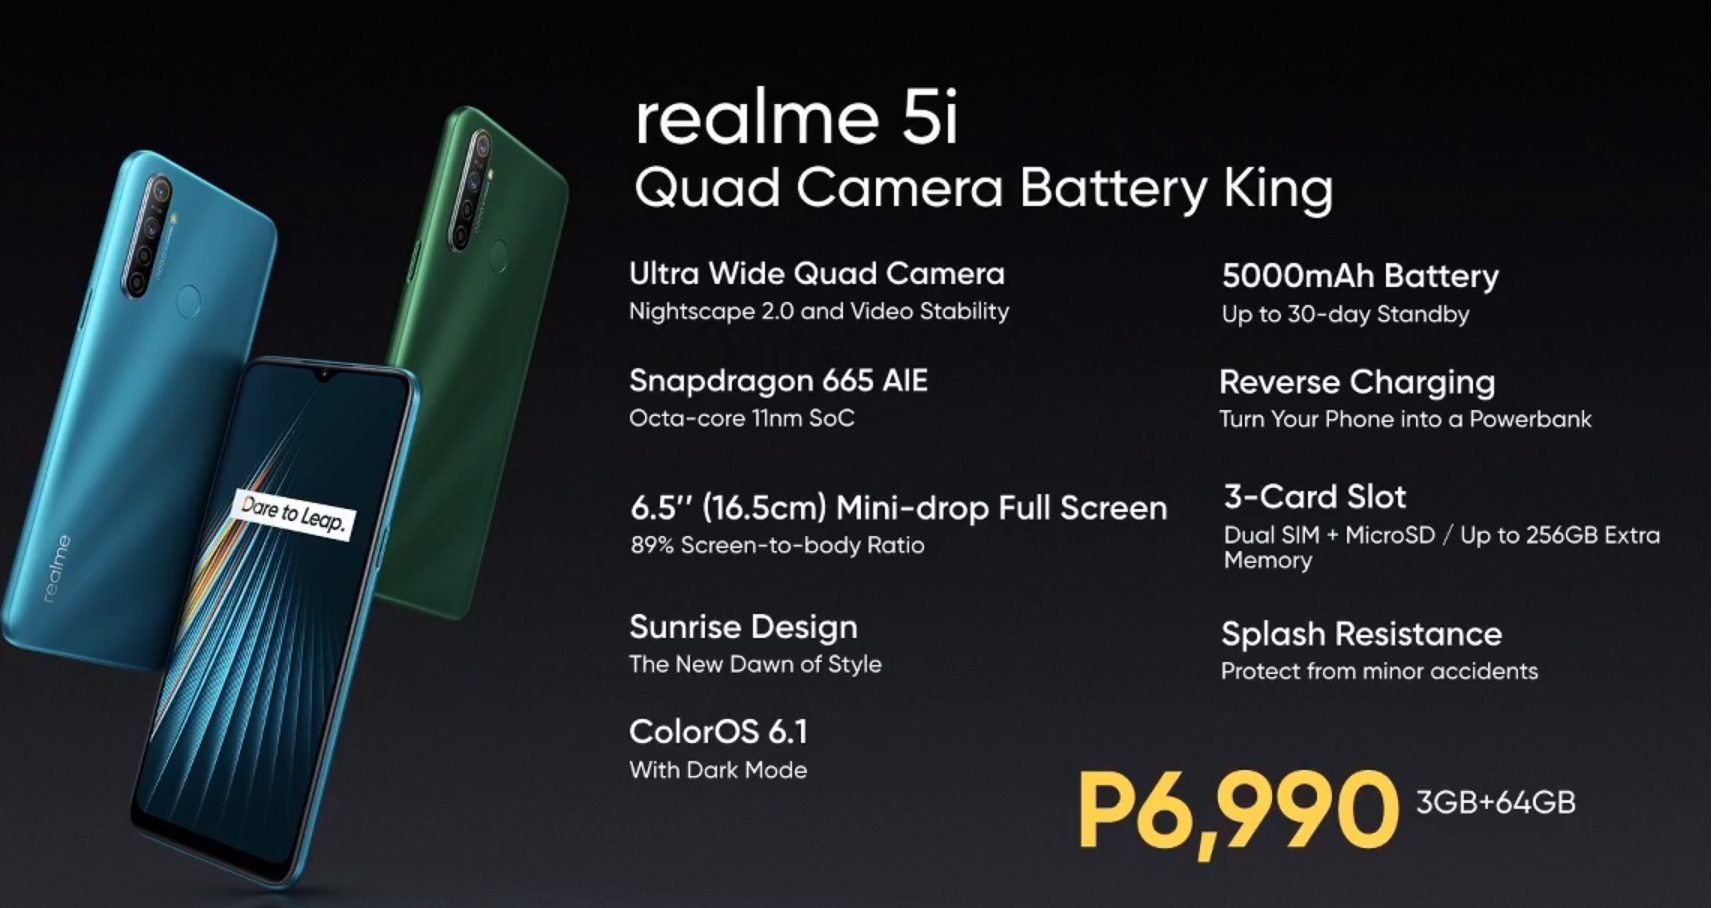 realme-5i-official-price-specs-release-date-available-philippines-2